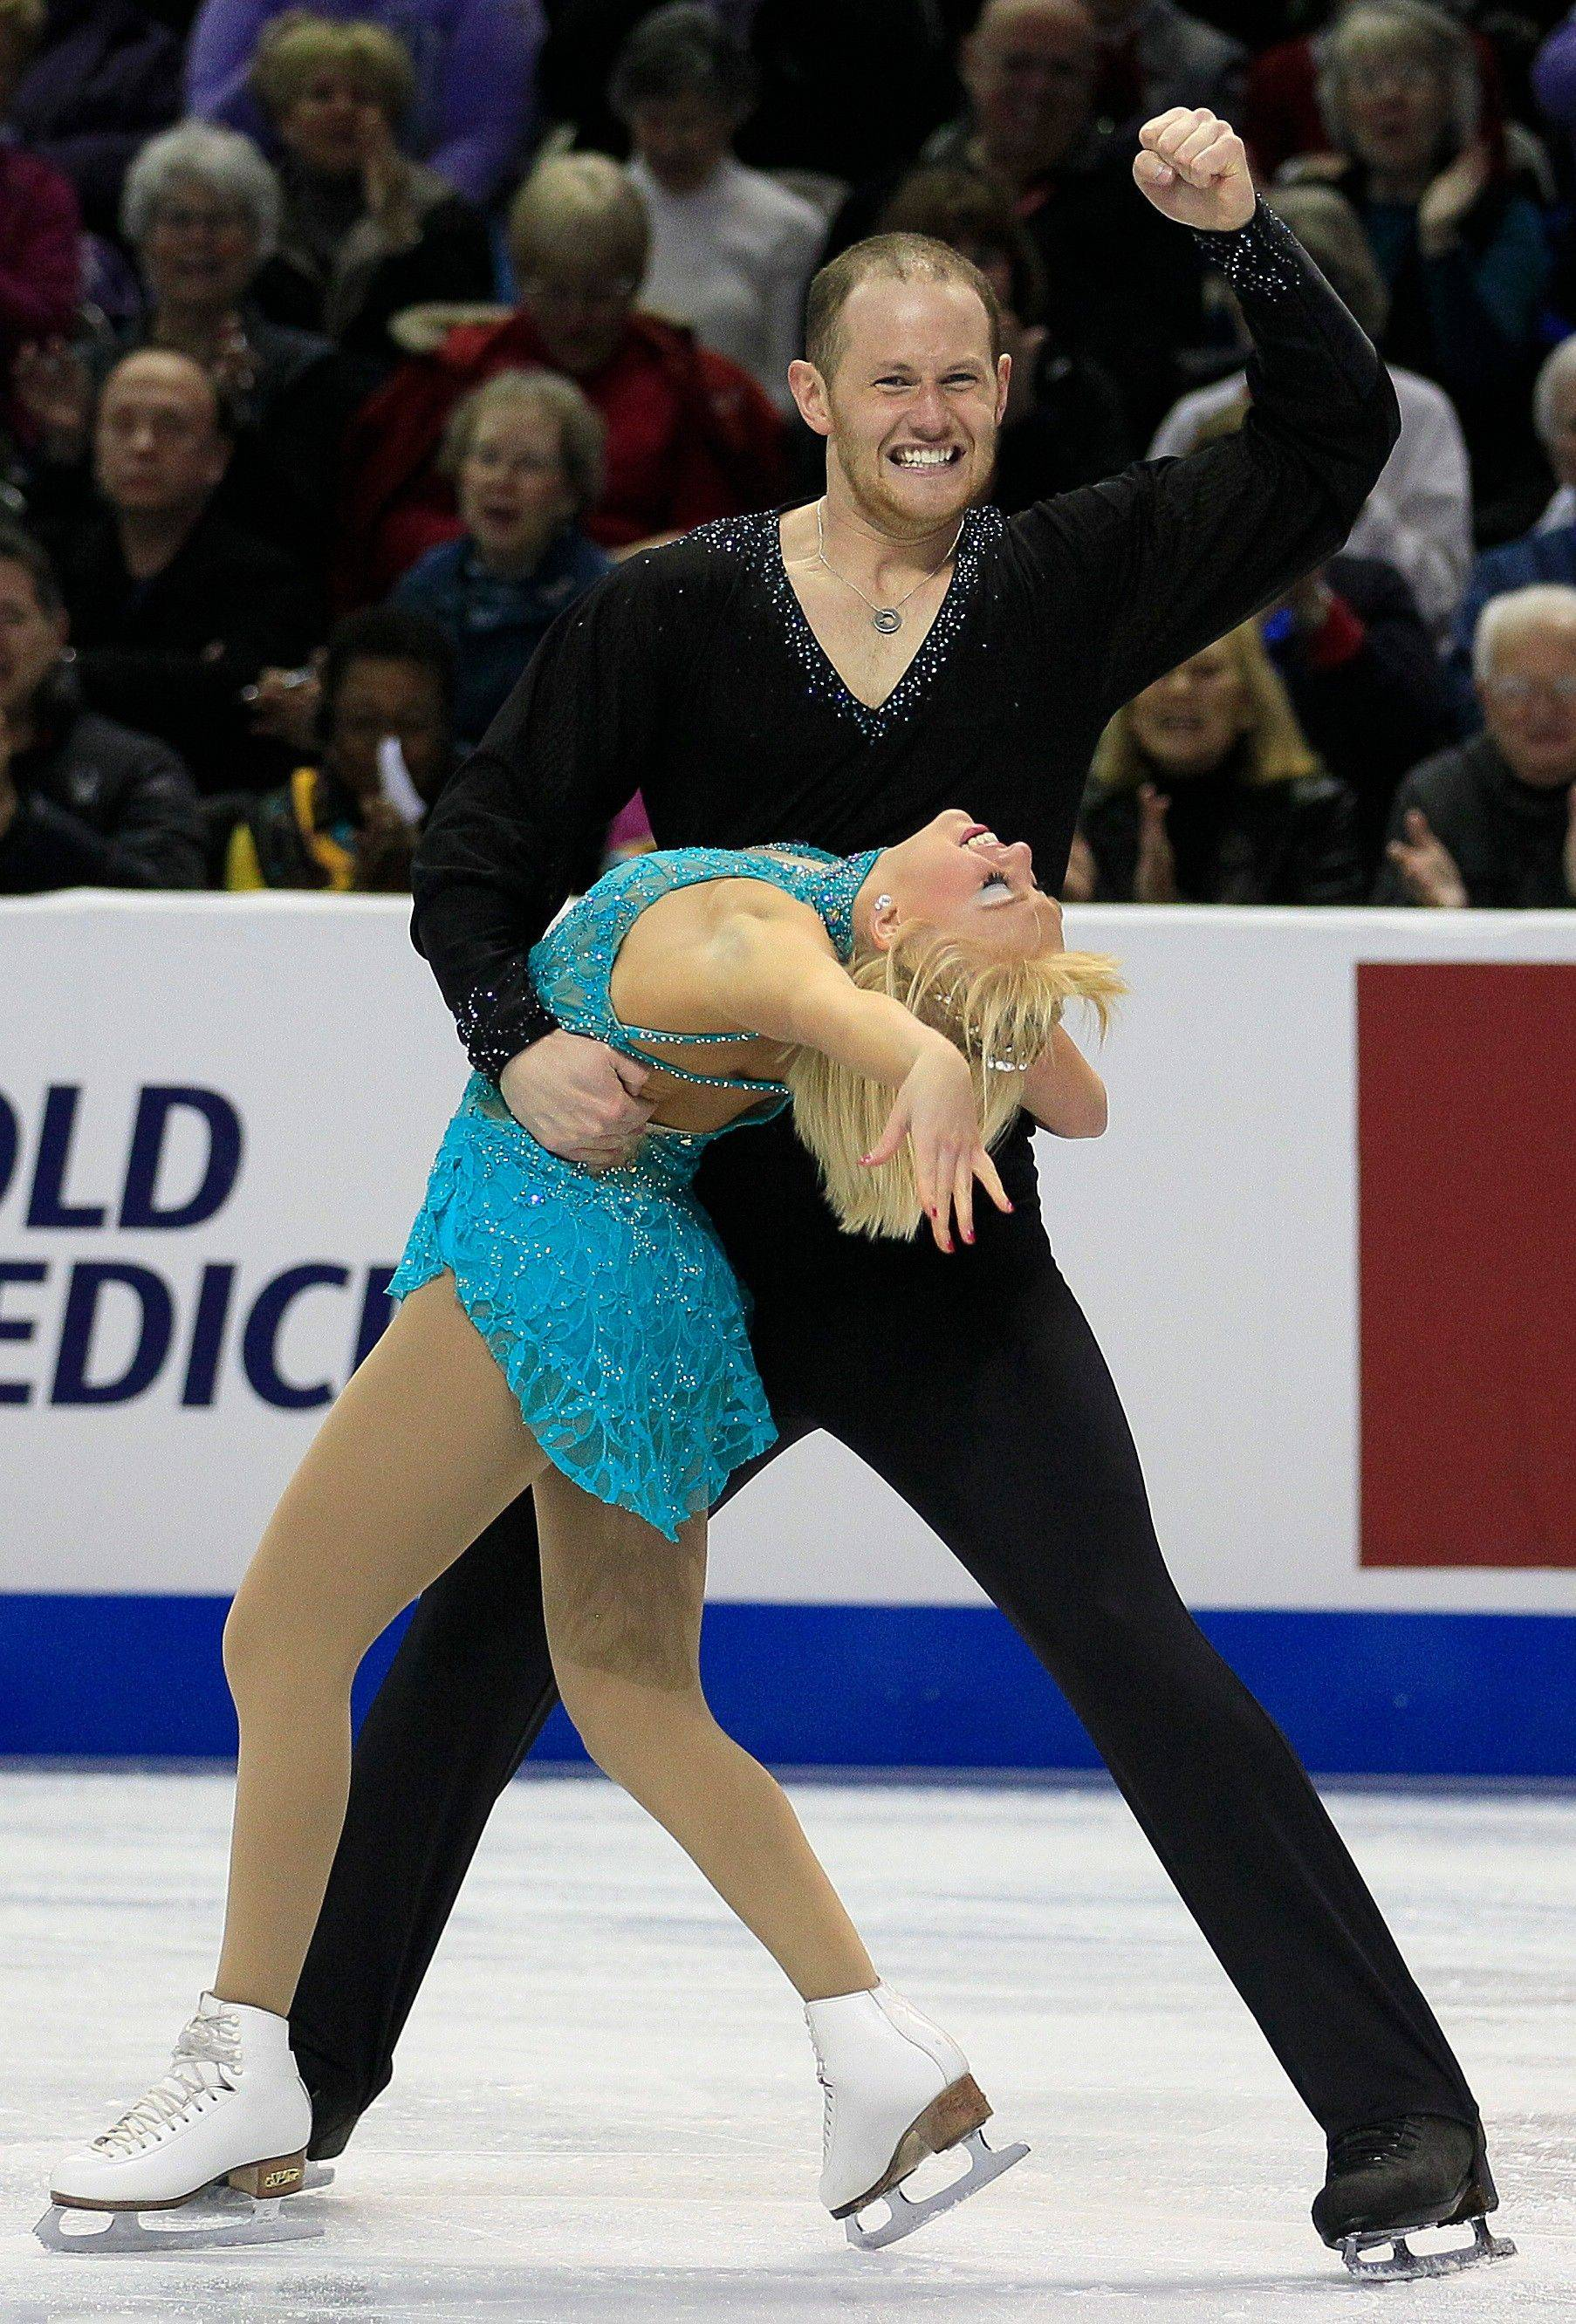 John Coughlin celebrates after he and Caydee Denney competed in the pairs free skate event at the U.S. Figure Skating Championships. They will compete at the Worlds in March.